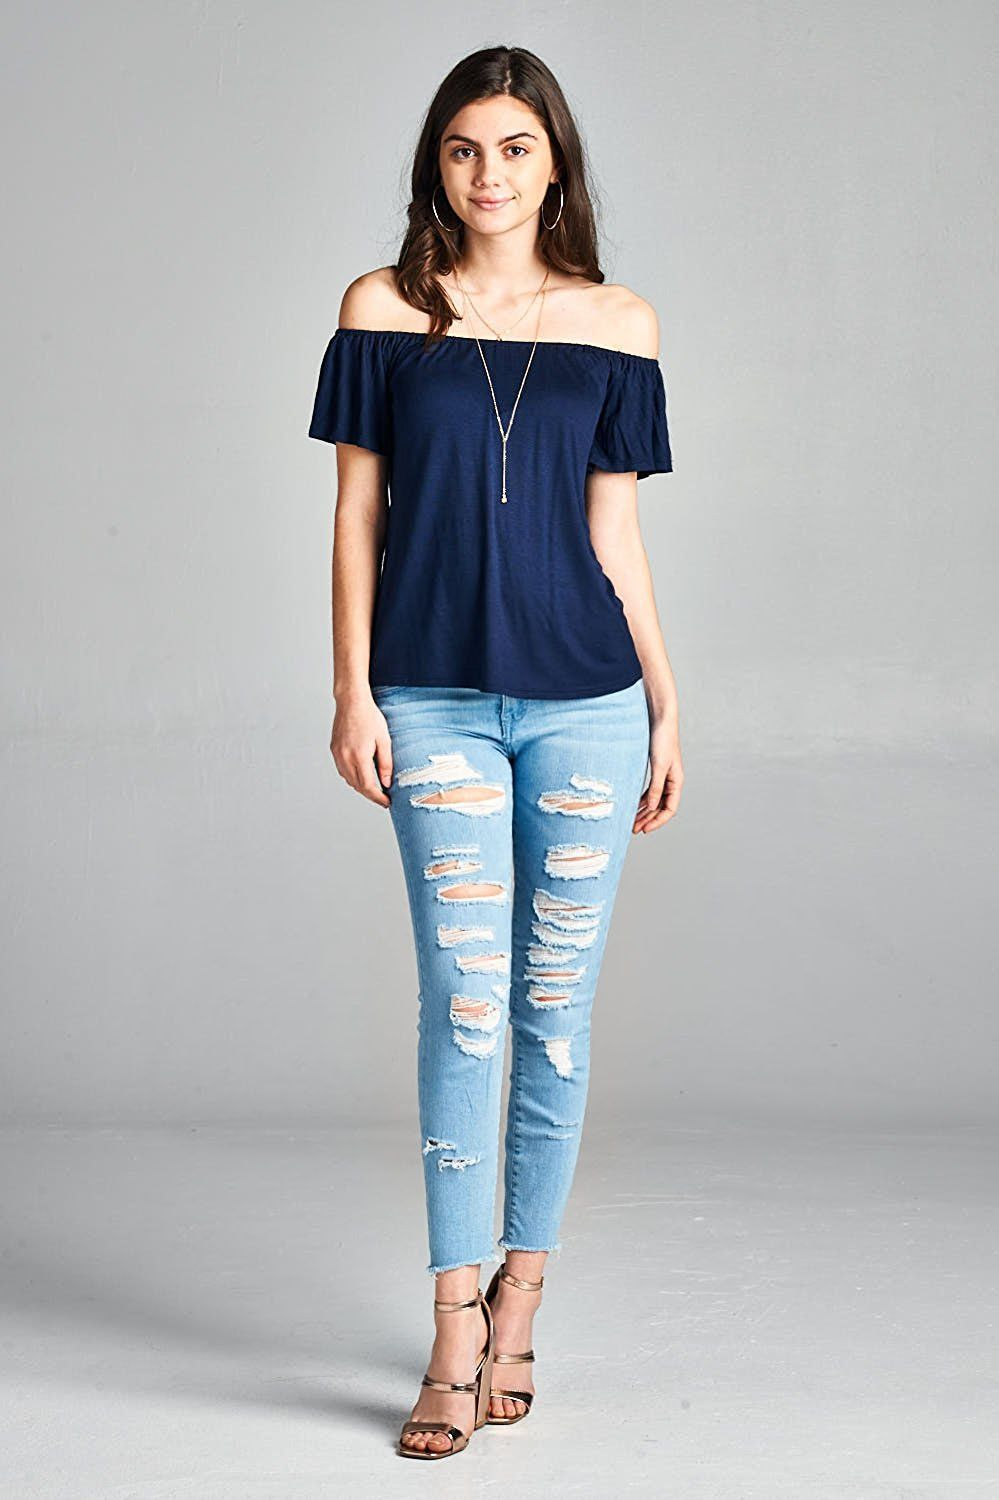 af873d66bb3386 Emmalise Short Sleeve Off Shoulder Tops for Women at Amazon Women's  Clothing store: